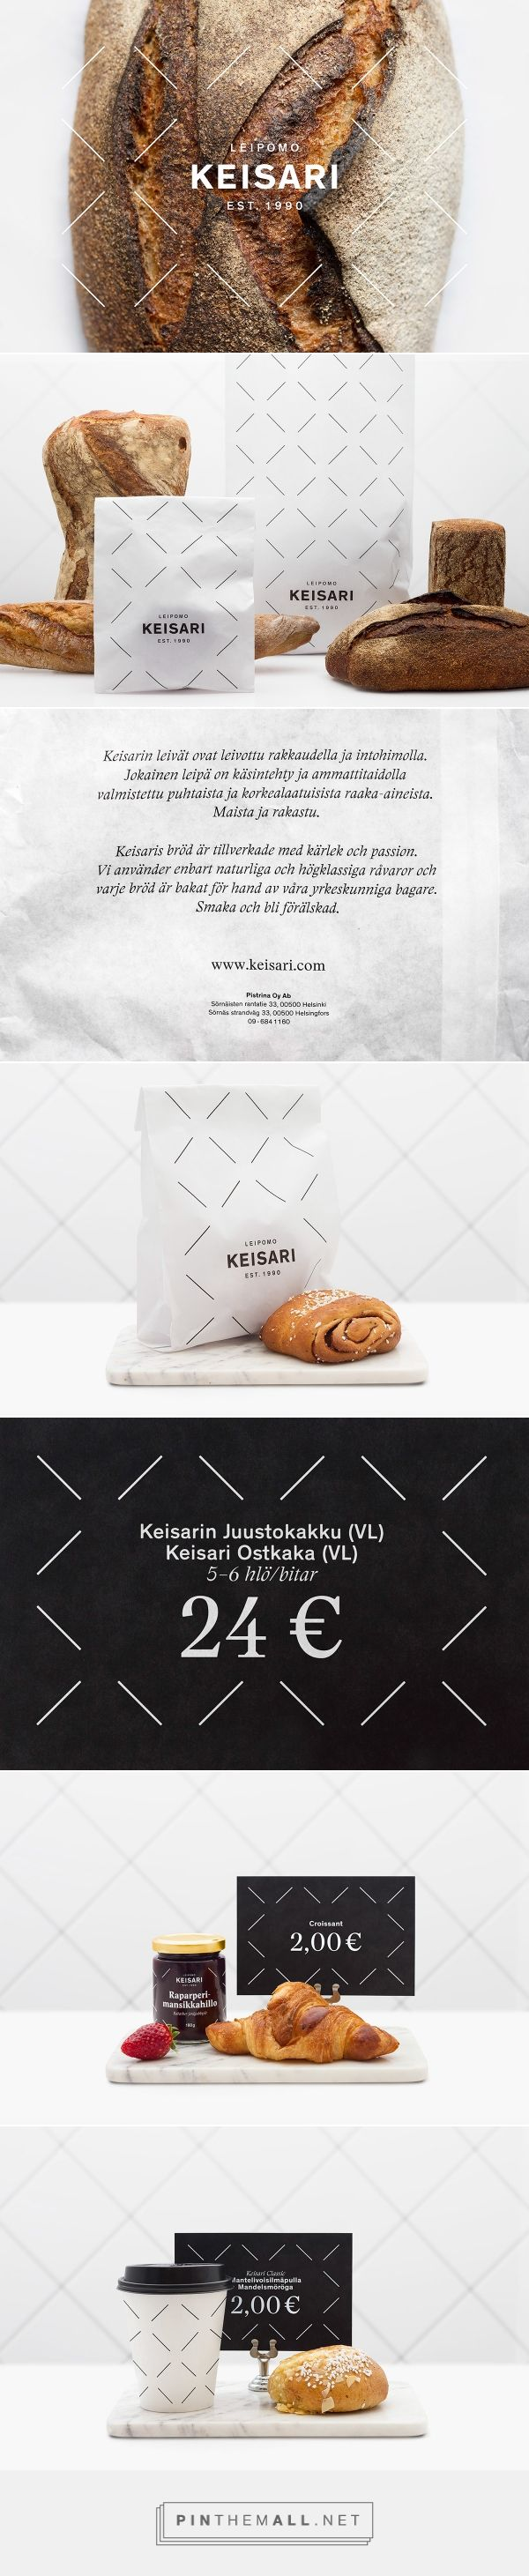 Keisari Bakery on Behance by Werklig curated by Packaging Diva PD.  In packaging we decided to use white materials instead of the usual brown as it created a clear differentiation from other bakery brands. Branding Packaging Pattern Design.